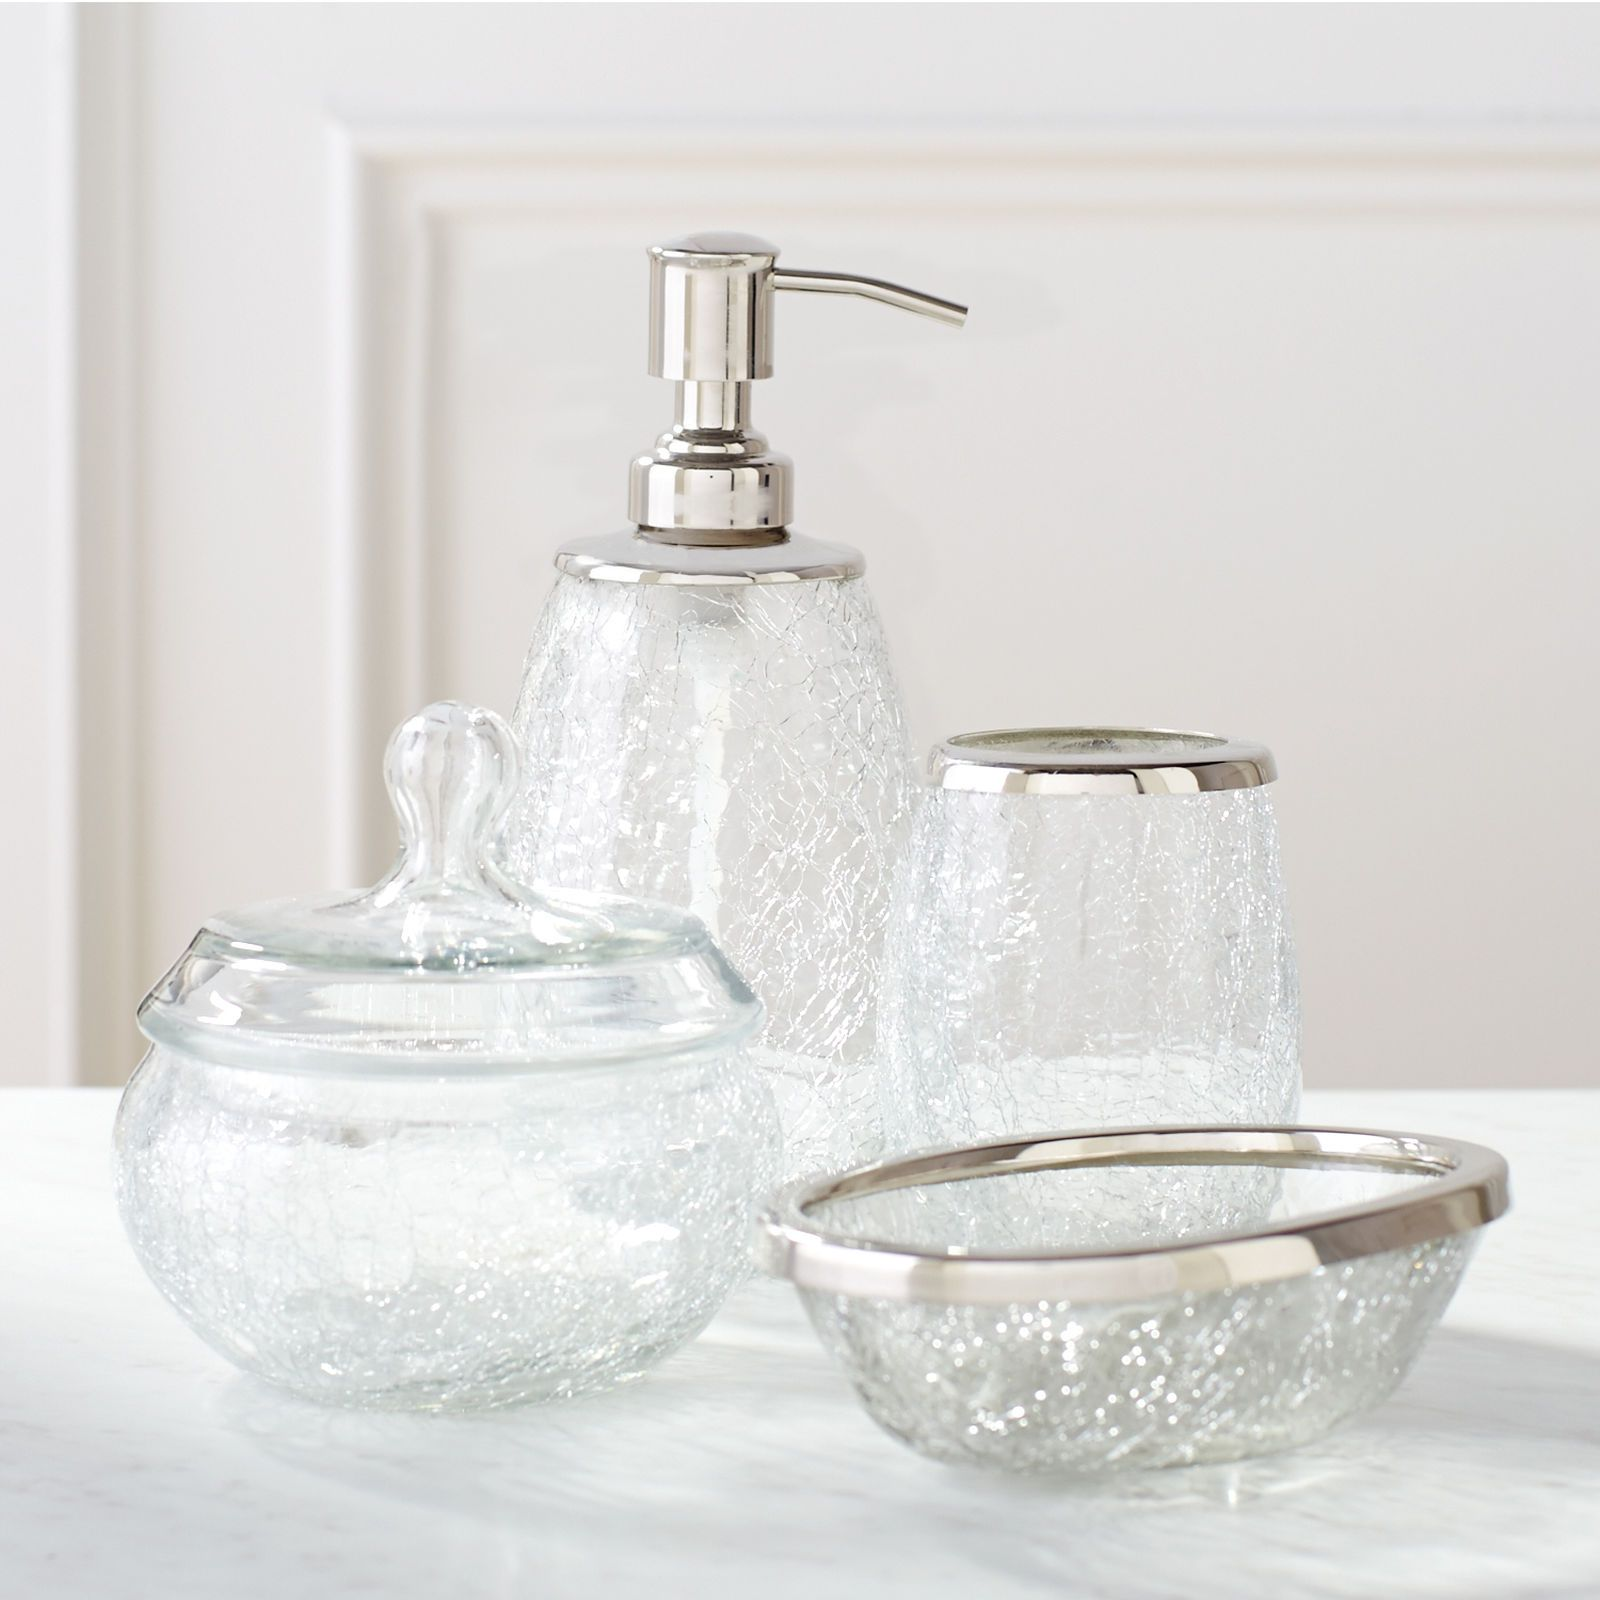 Fashion Meets Function In Our Sleek Crackle Glass Bath Accessories